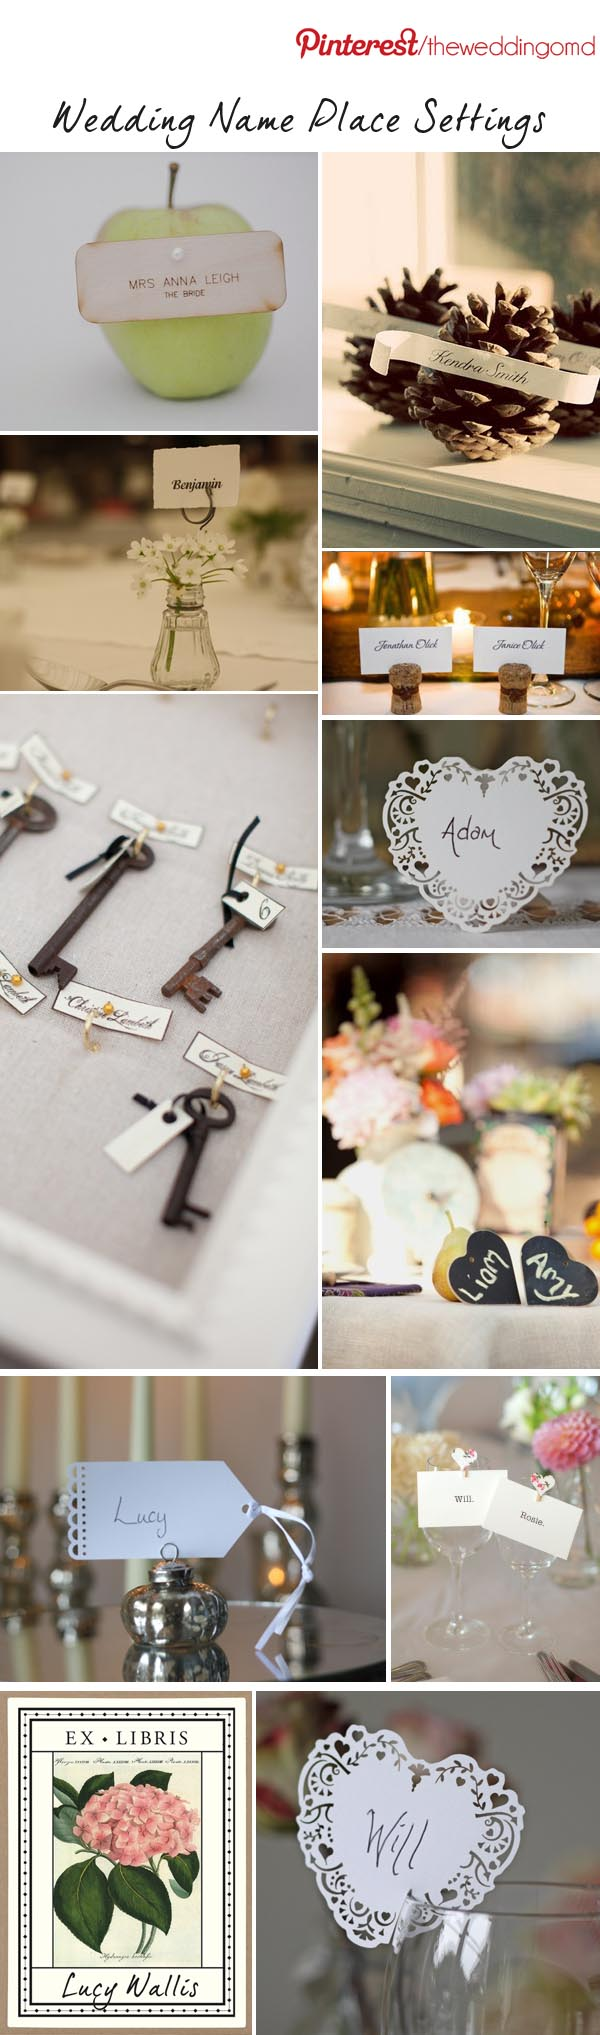 wedding name place settings